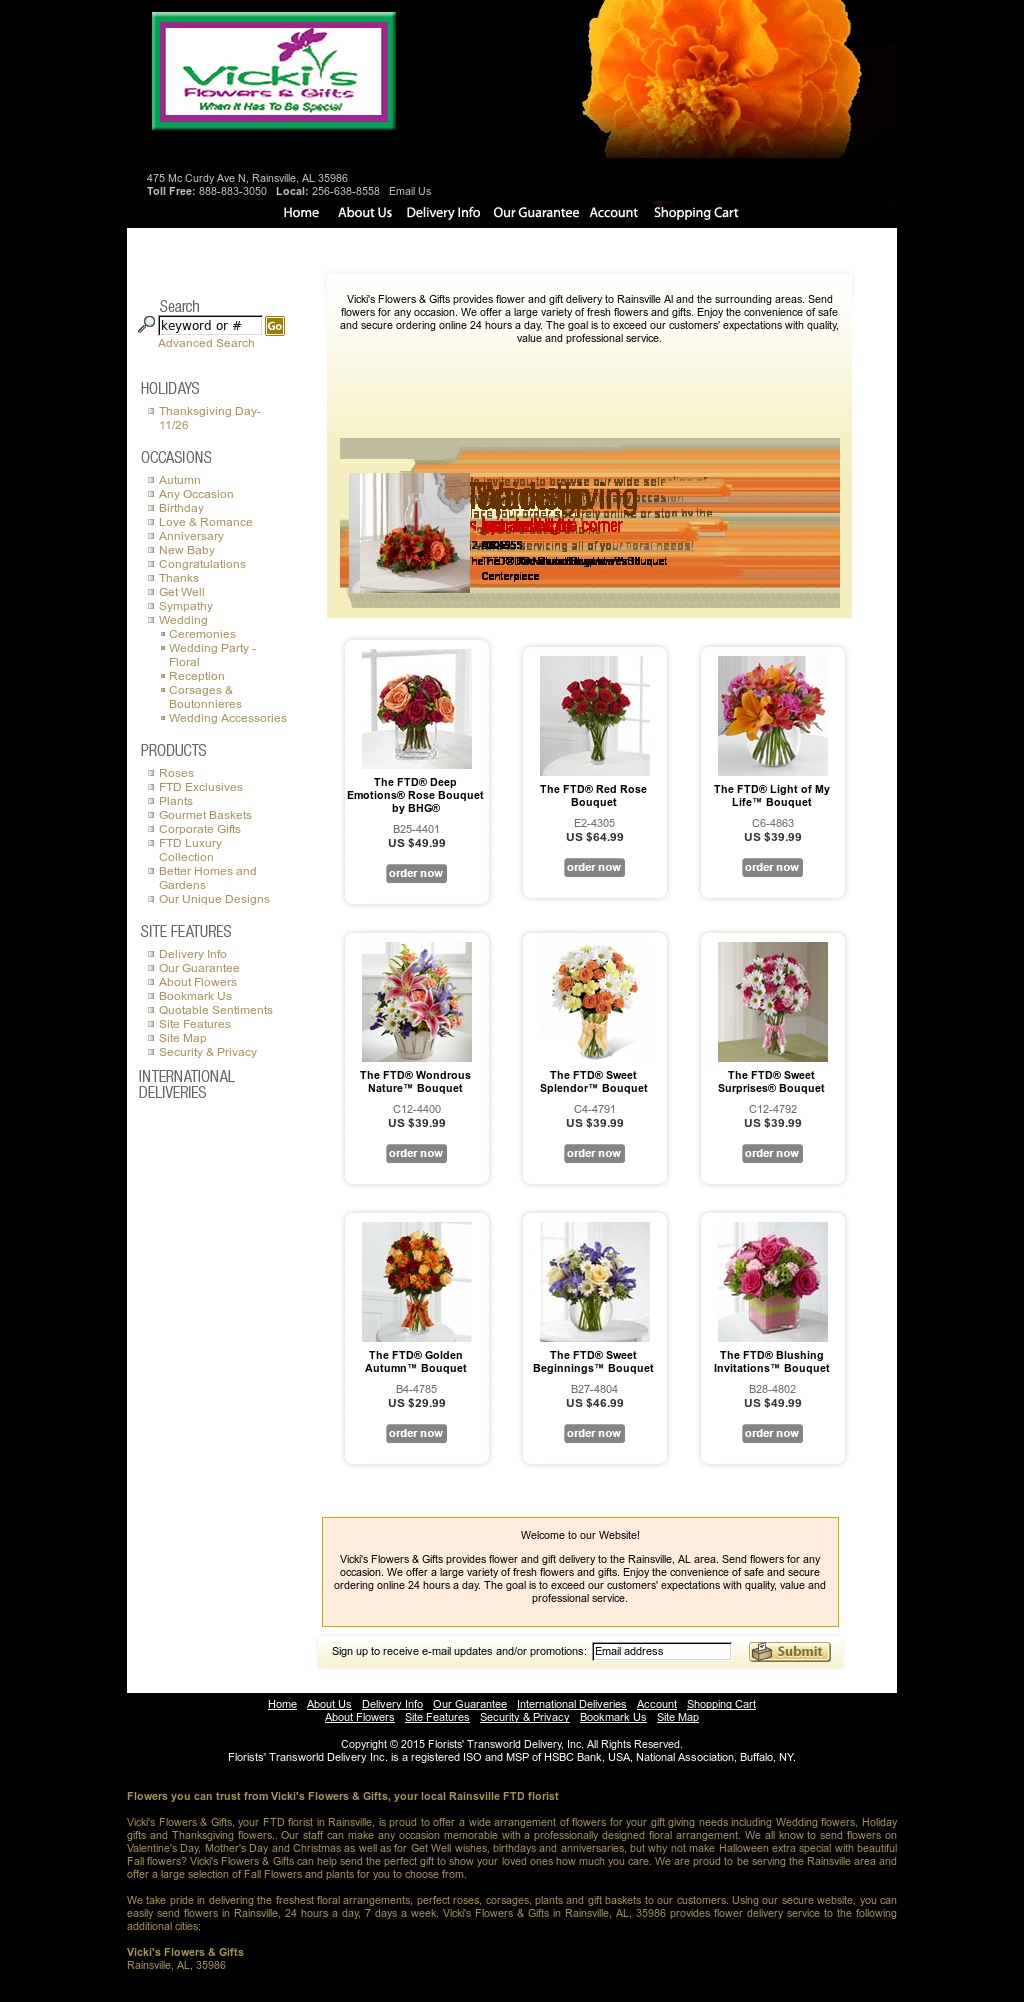 Vicki's Flowers & Gifts Competitors, Revenue and Employees